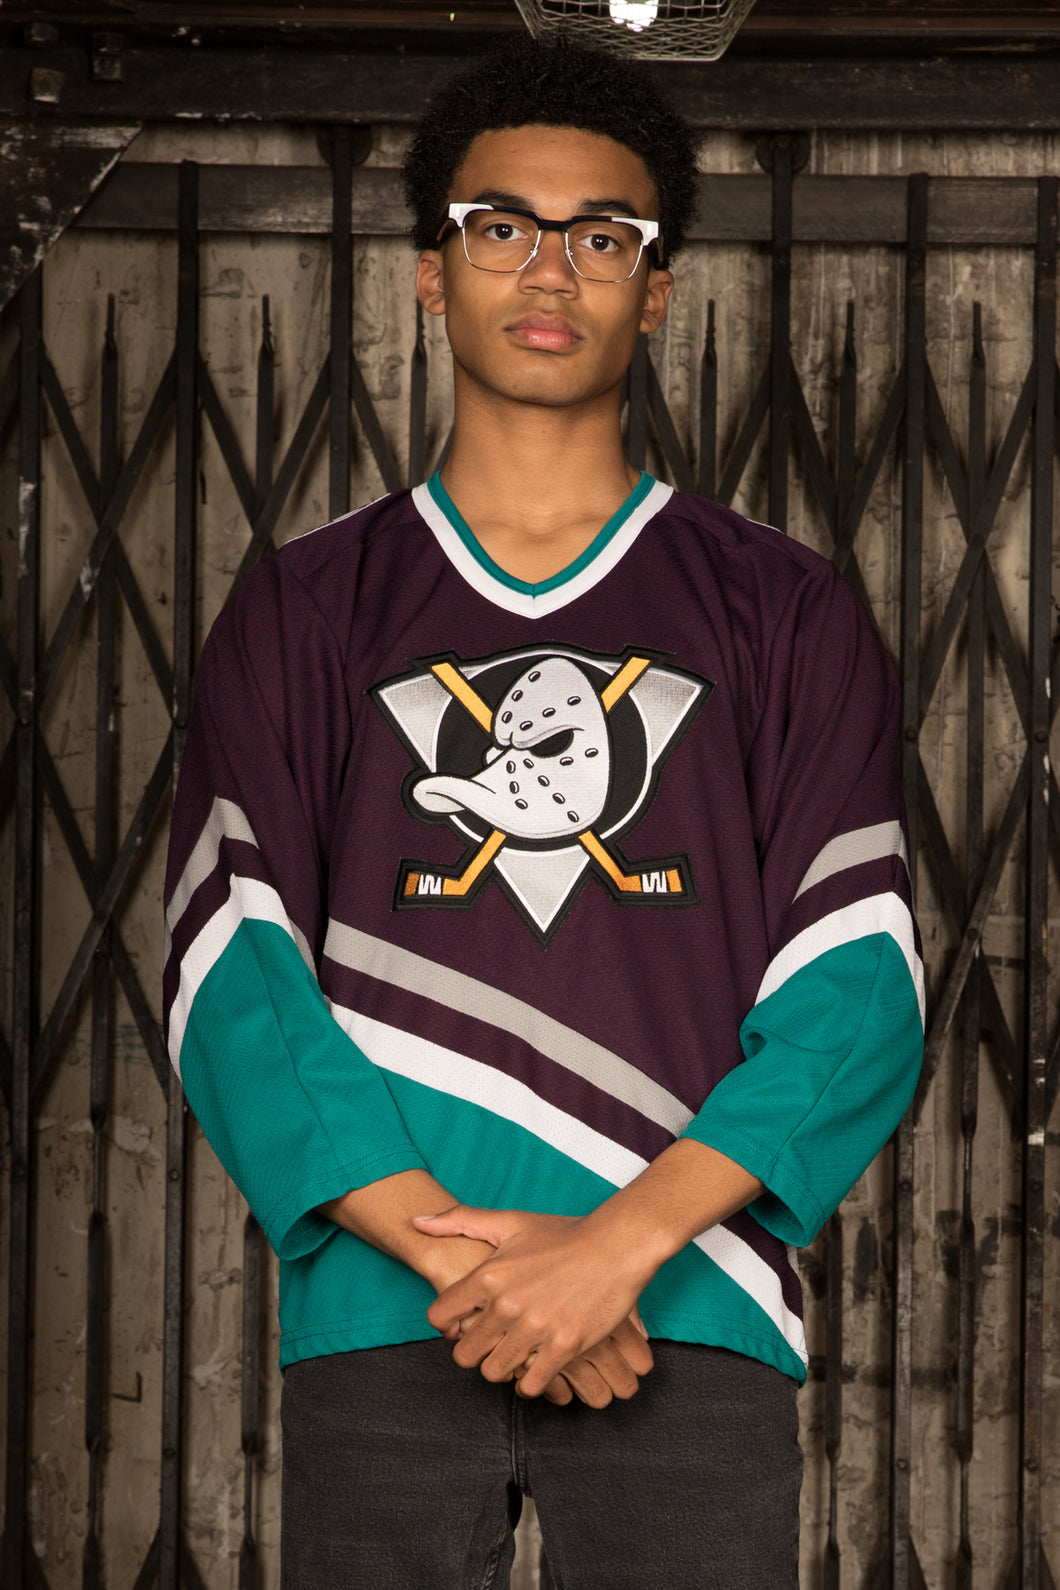 Mighty Ducks Ice Hockey Jersey